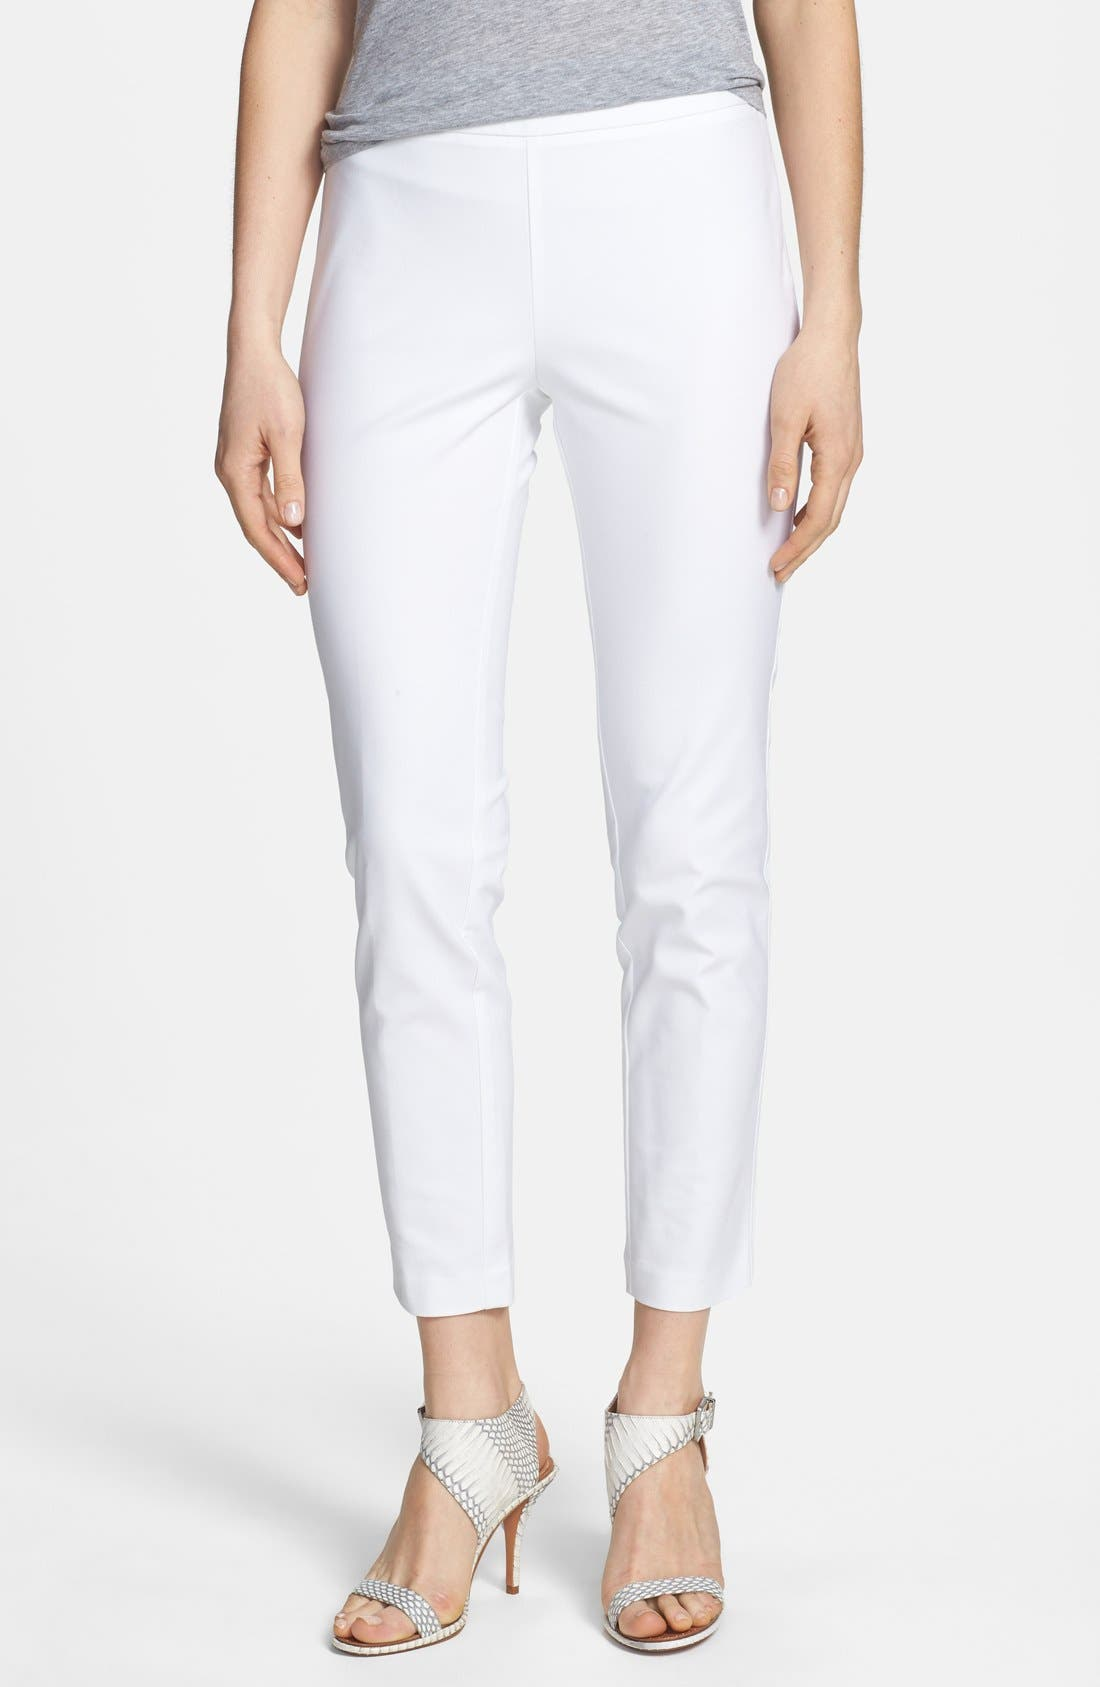 Main Image - Kenneth Cole New York 'Khloee' Crop Stretch Cotton Pants (Petite)